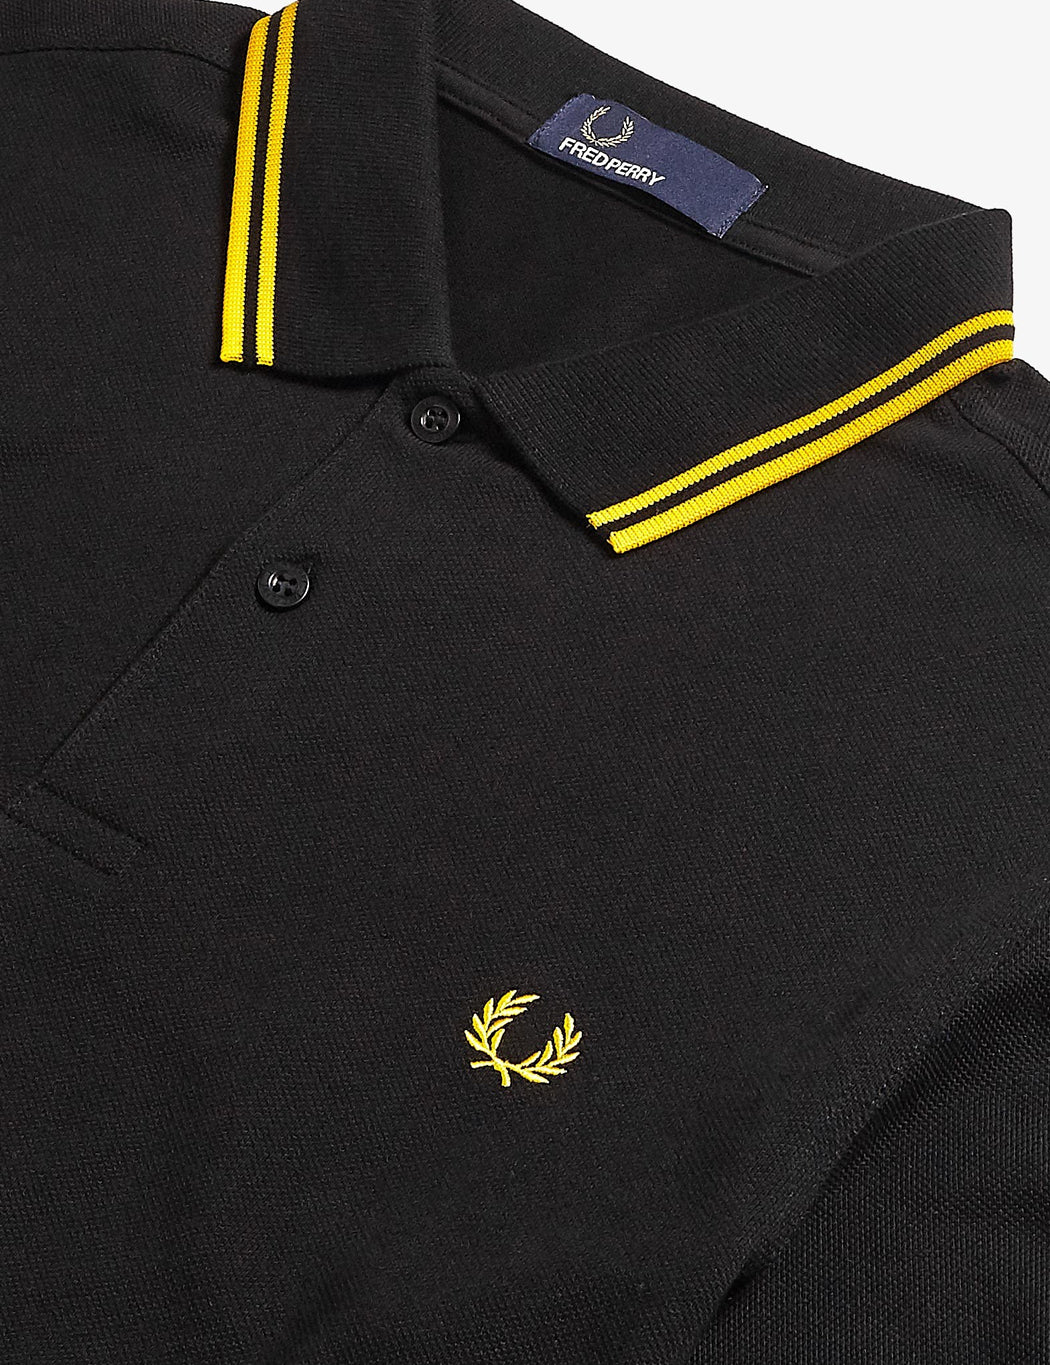 """Image result for fred perry t shirts yellow"""""""